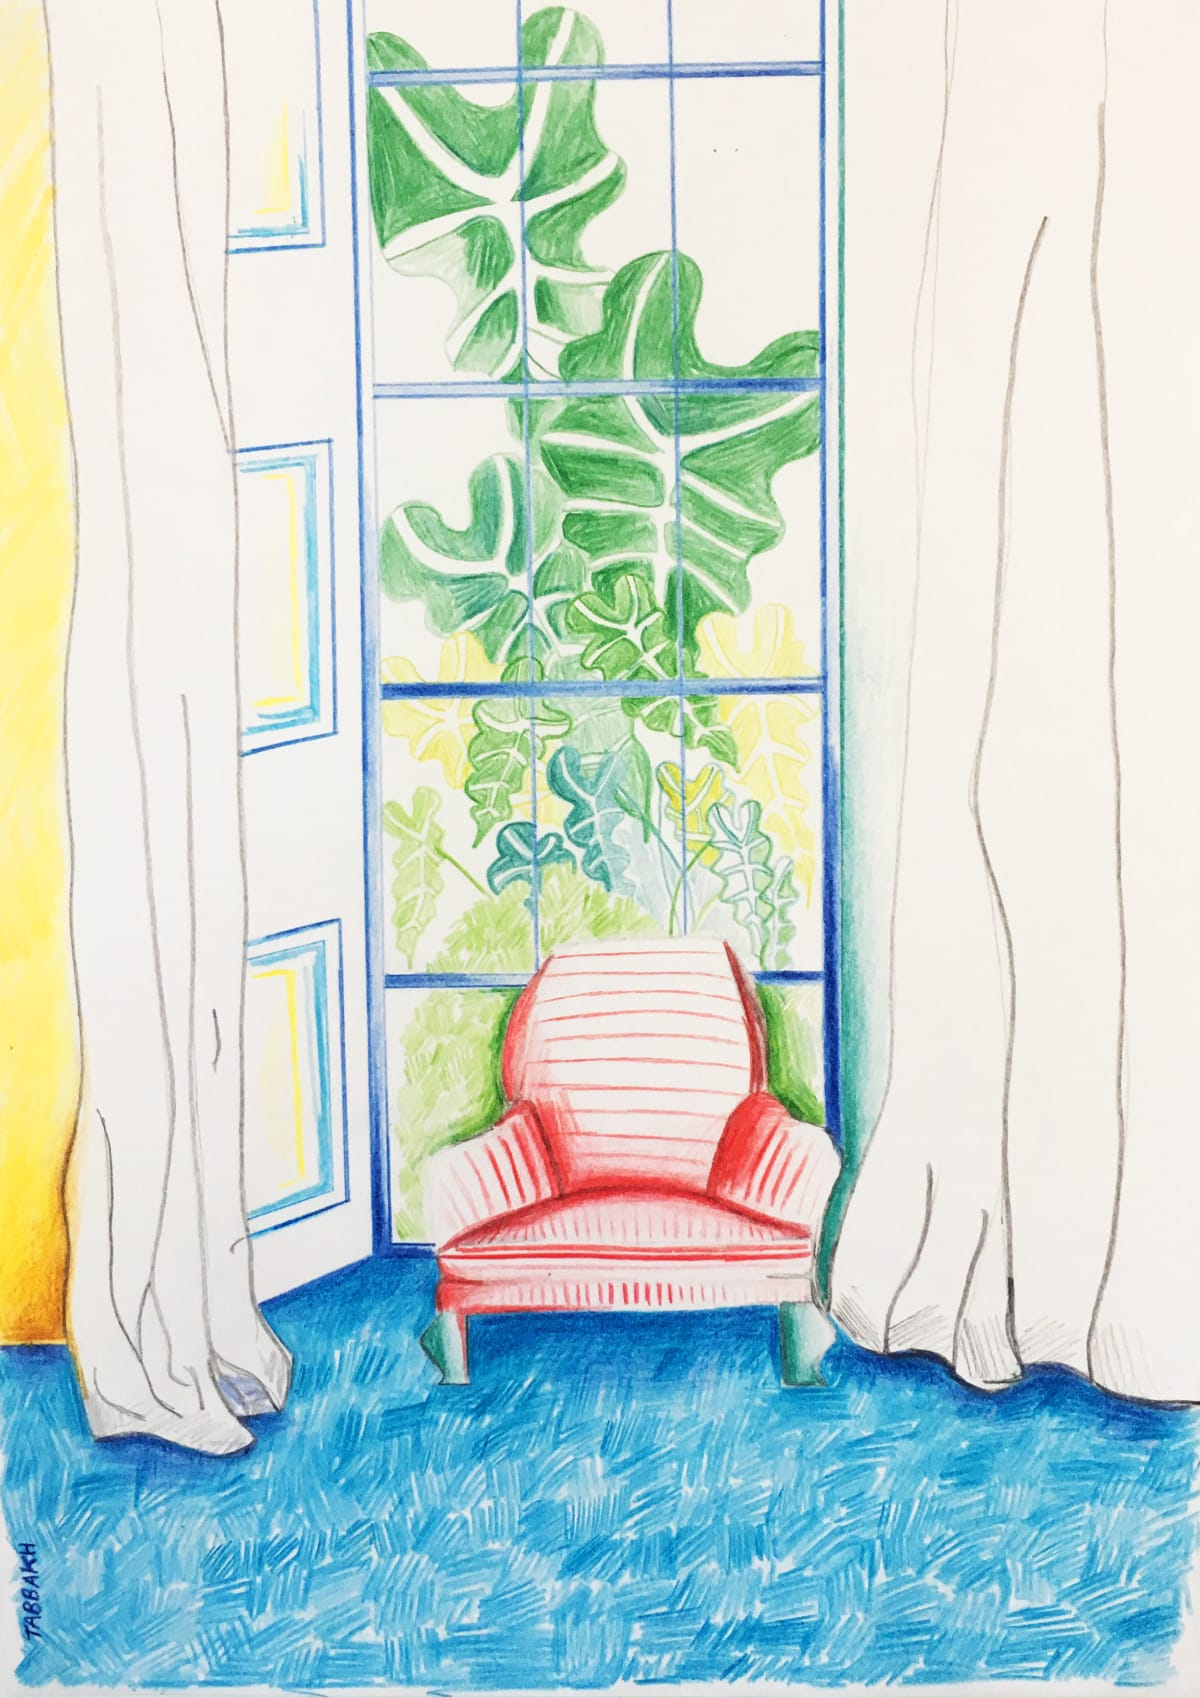 Cathy Tabbakh Blurry Garden , 2019 Colored Pencils on Paper 21 x 29 cm 8 1/4 x 11 3/8 in